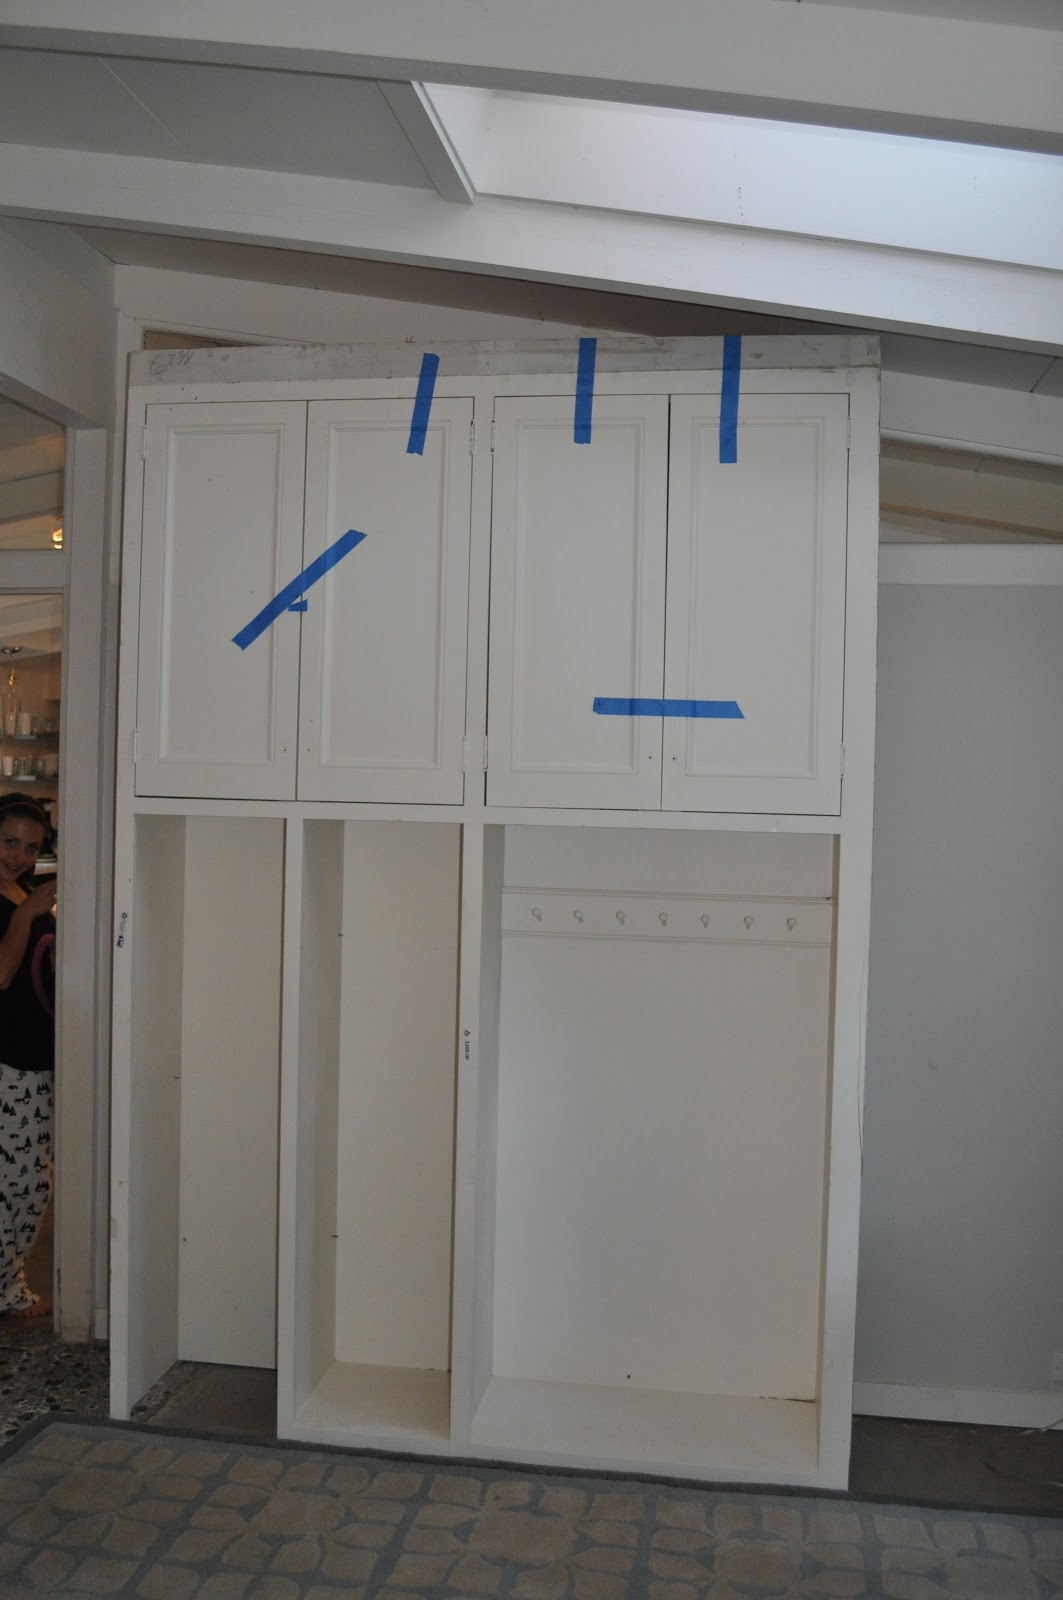 tre sorelle cottage: Entry way storage cabinet retrofit